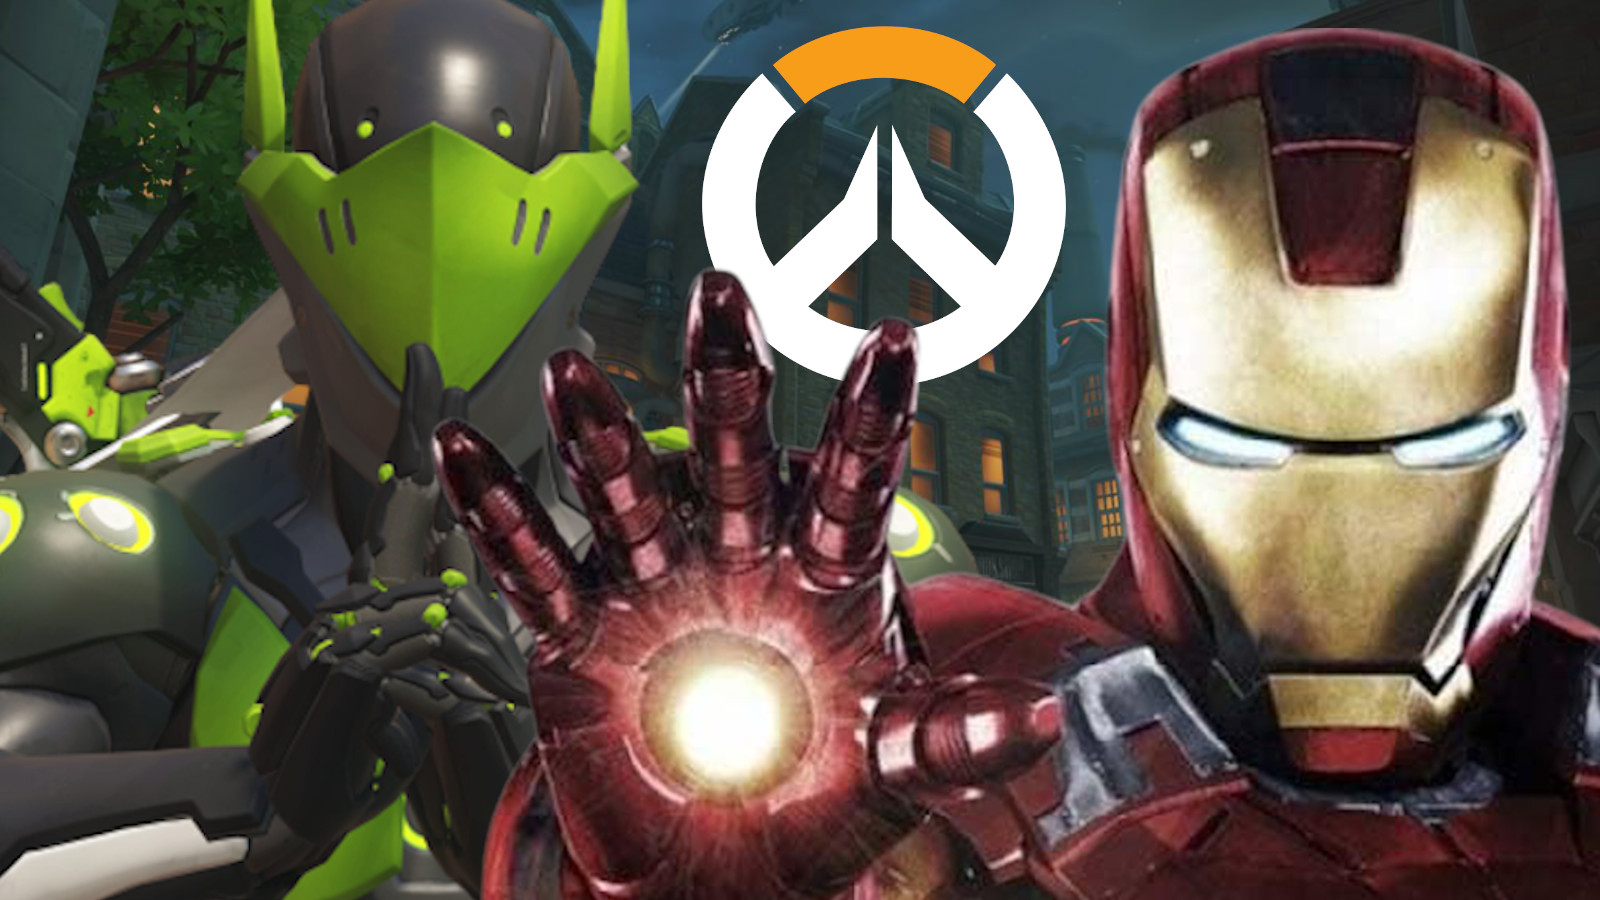 Genji Ironman in Overwatch's Kings Row map